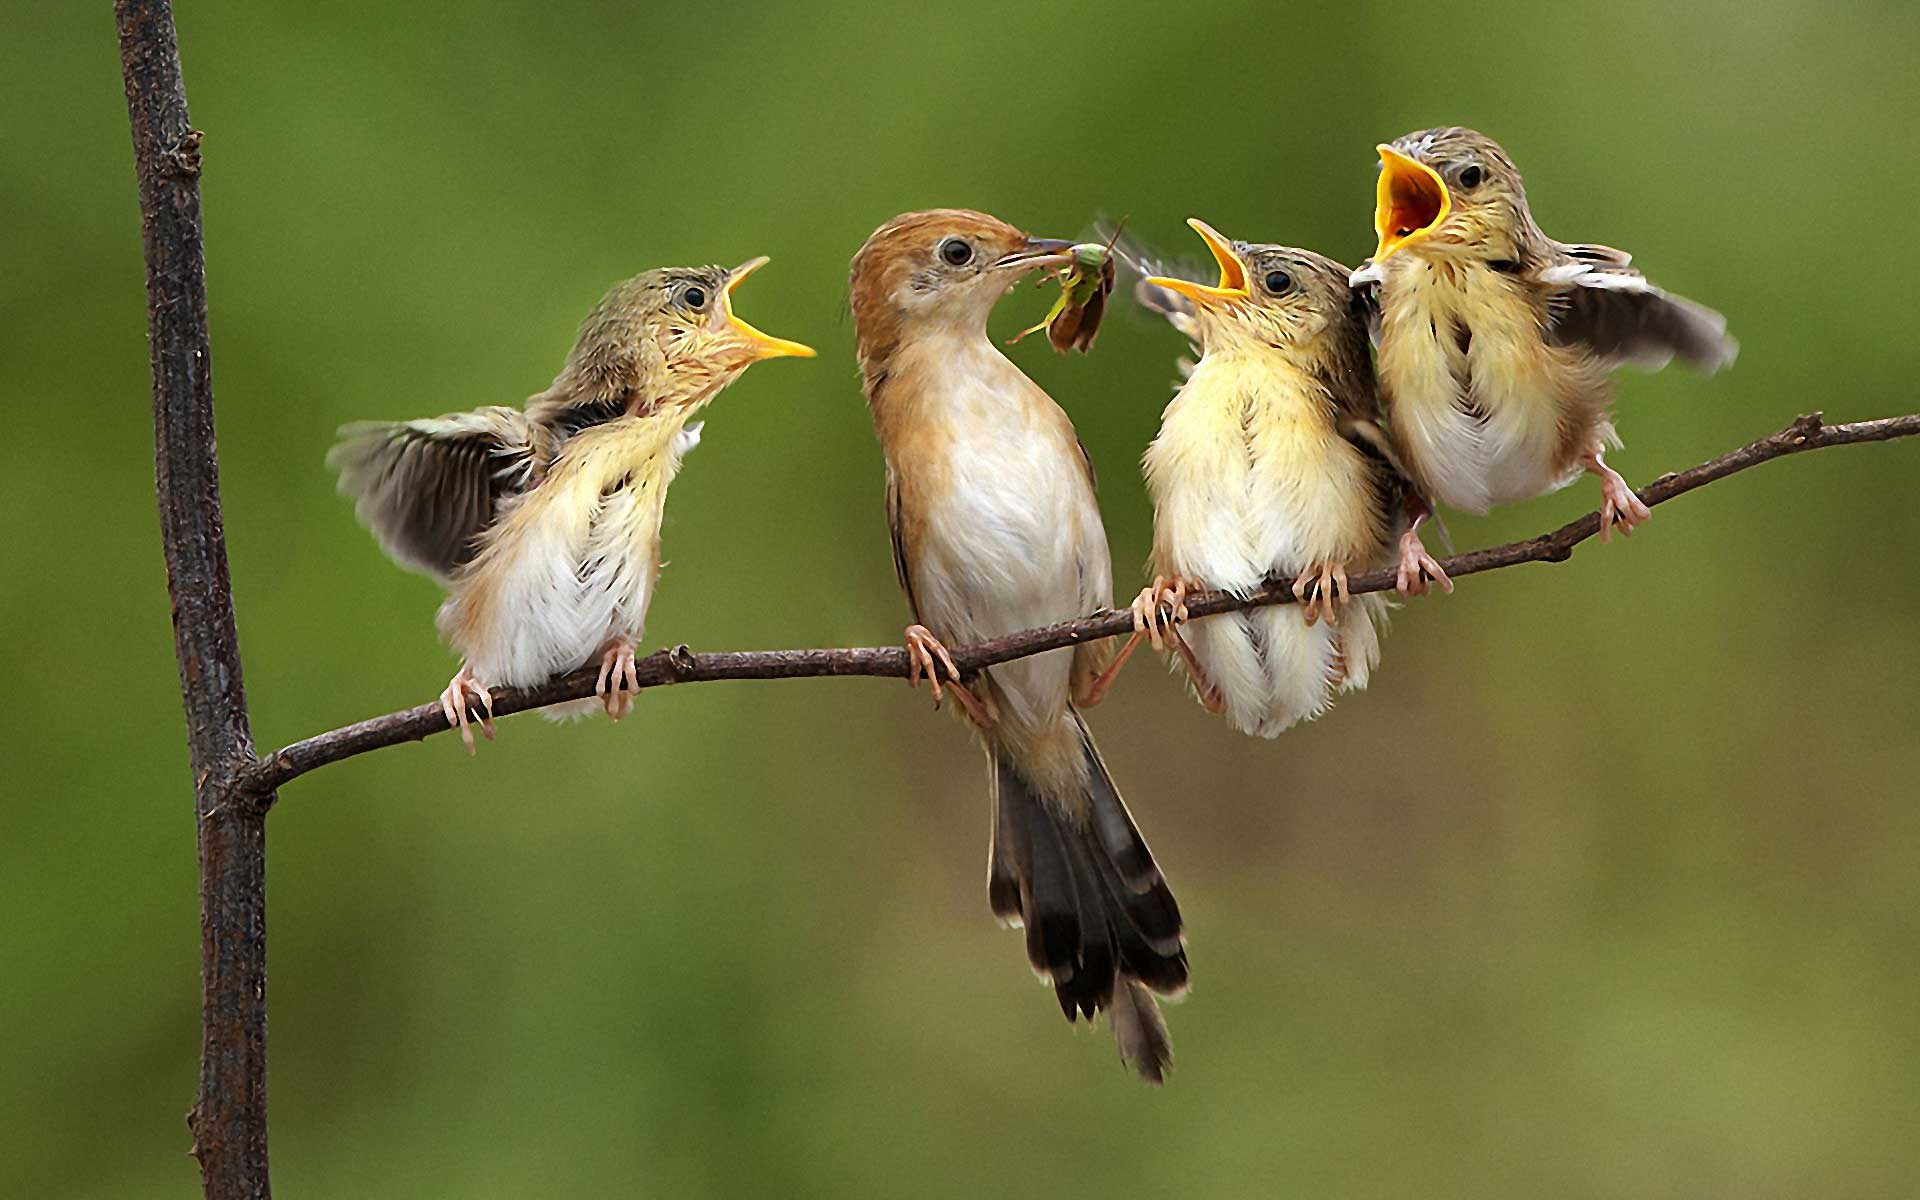 Baby Birds HQ Photo Wallpaper Cute #5381 Wallpaper | iWallDesk.